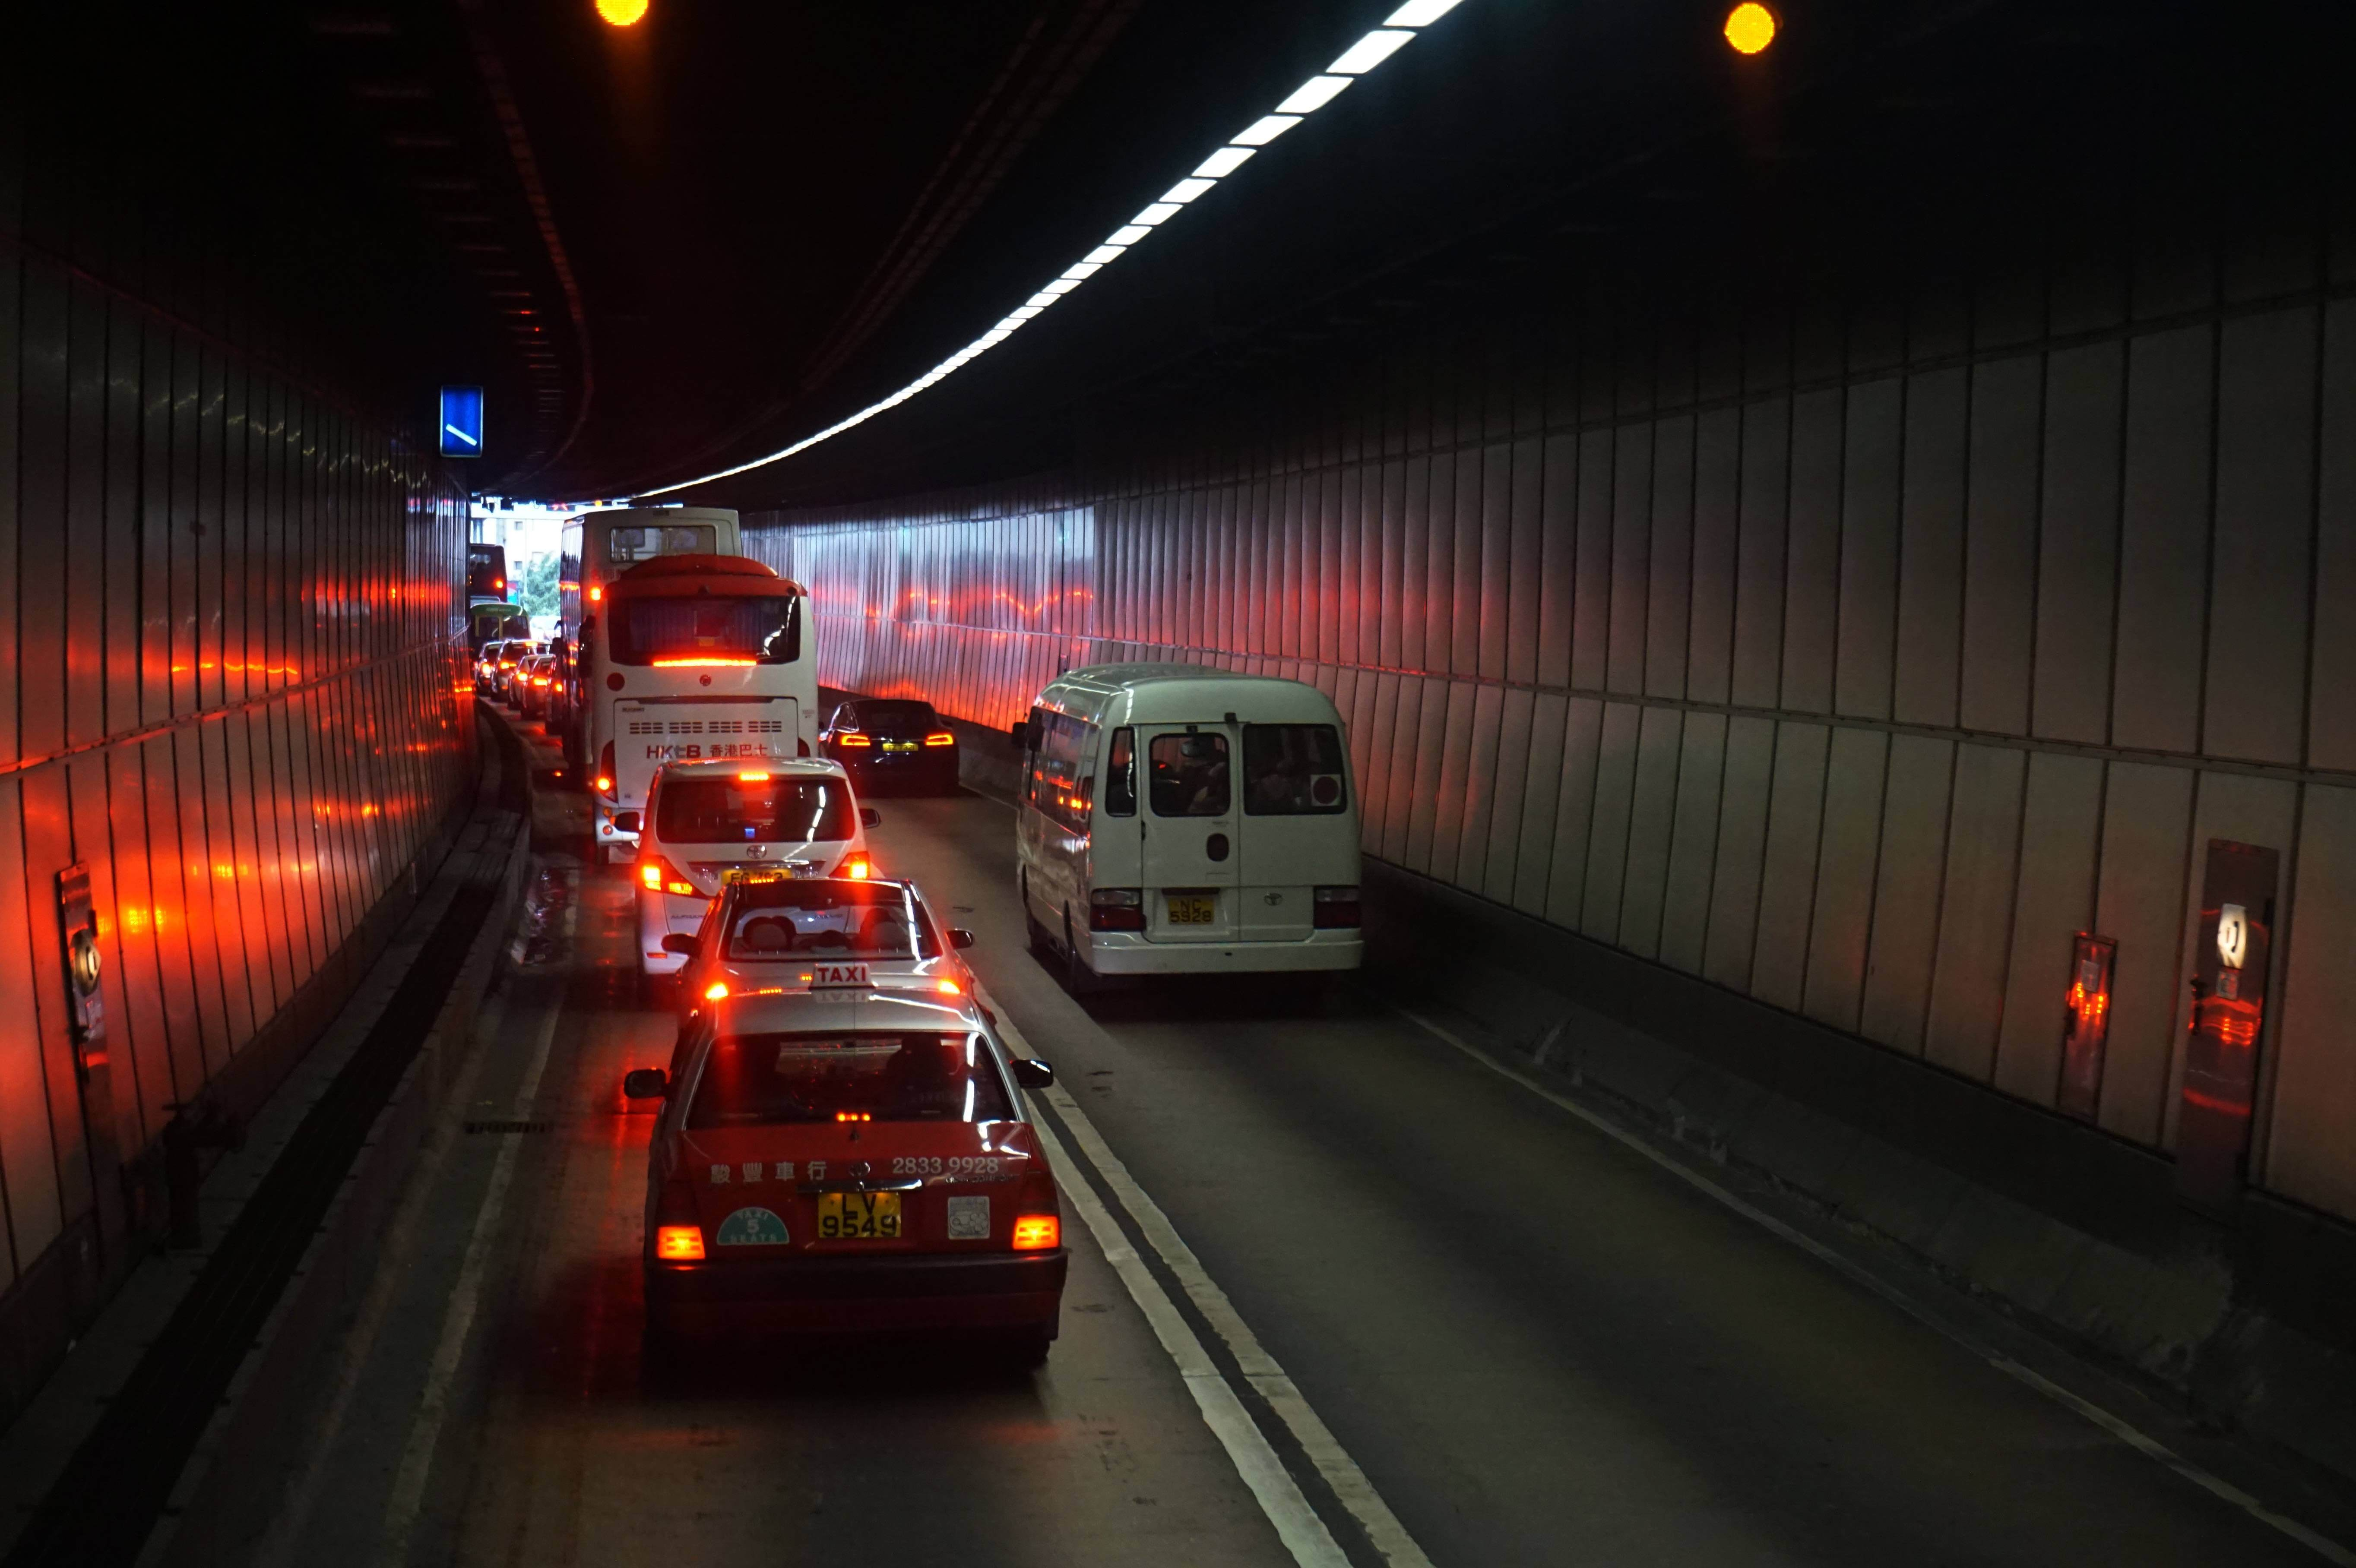 There are traffic jams almost every morning in the Aberdeen tunnel as more than 70 per cent of residences rely on the tunnel to get to other parts of Hong Kong